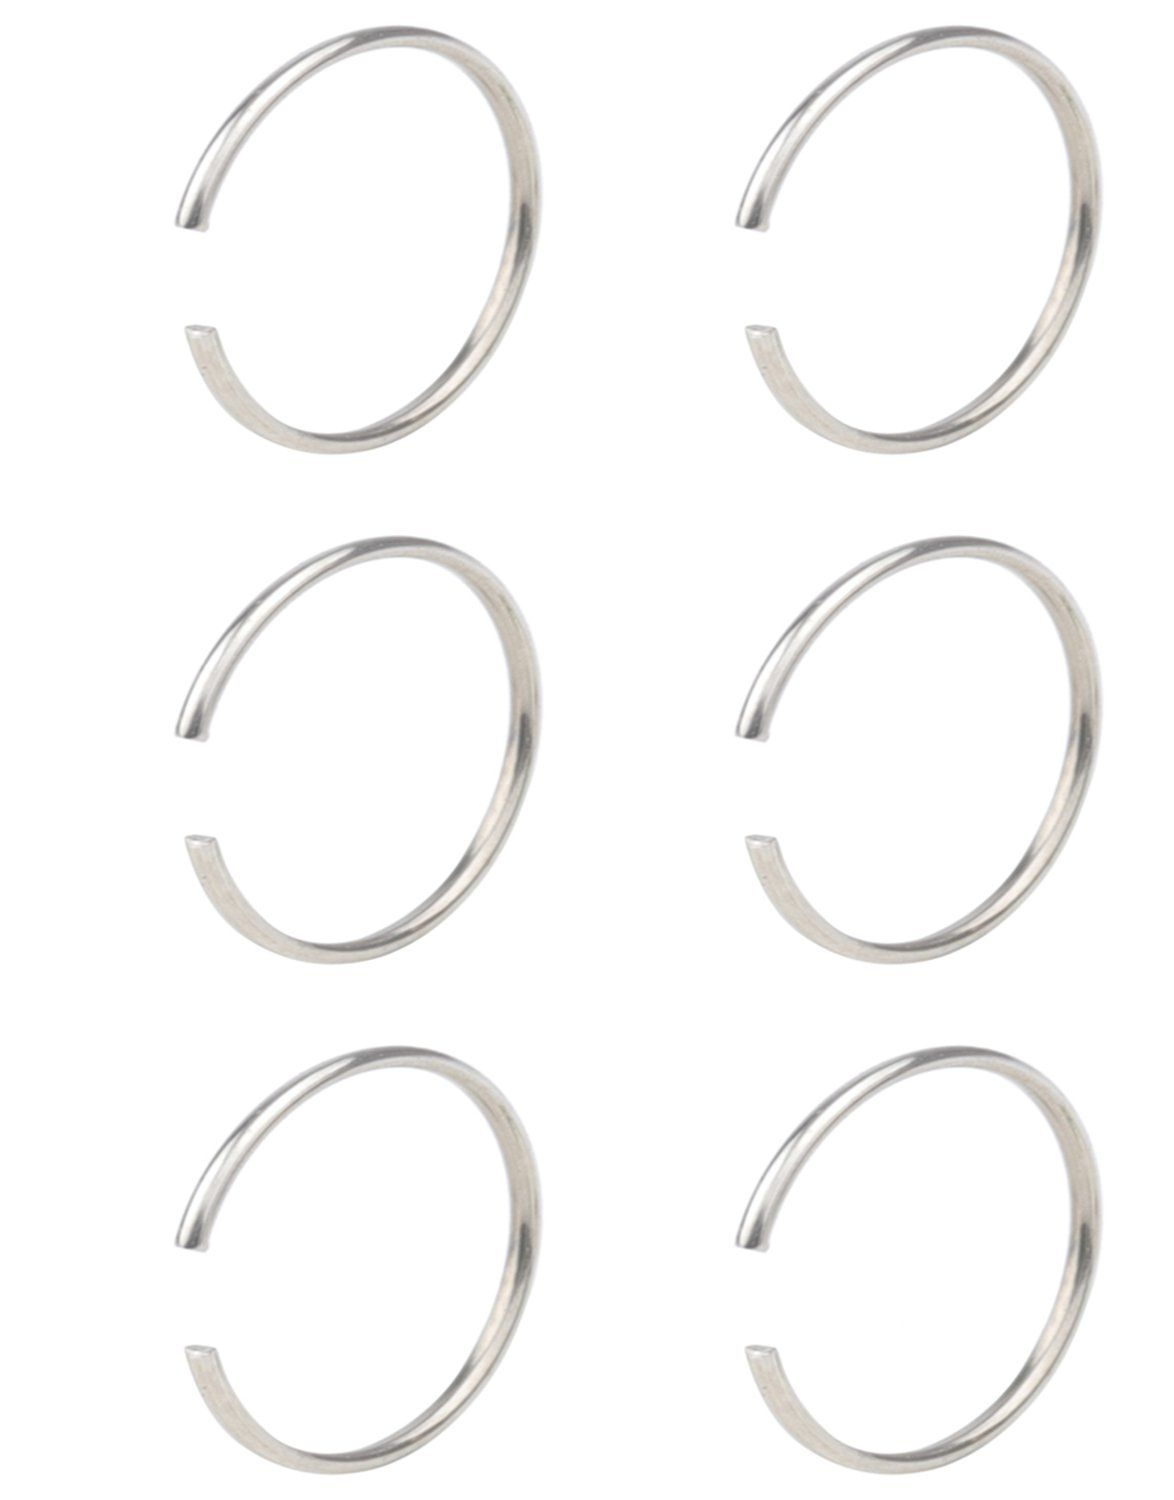 Without piercing nose ring  FB G Nose Hoop Ring Nose Studs Rings Stainless Steel Body Jewelry